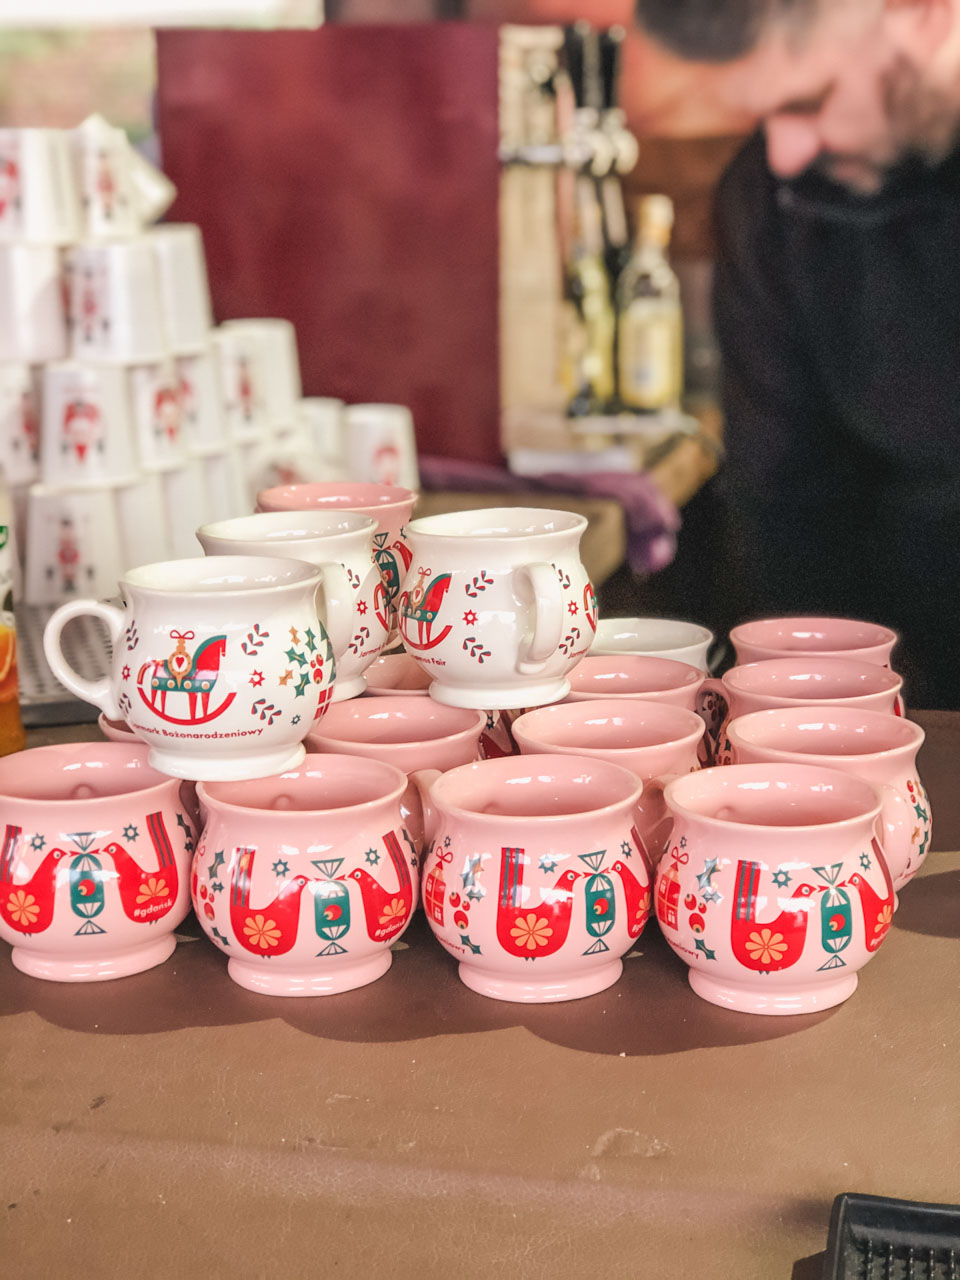 Ceramic collector's mugs at the Christmas market in Gdańsk